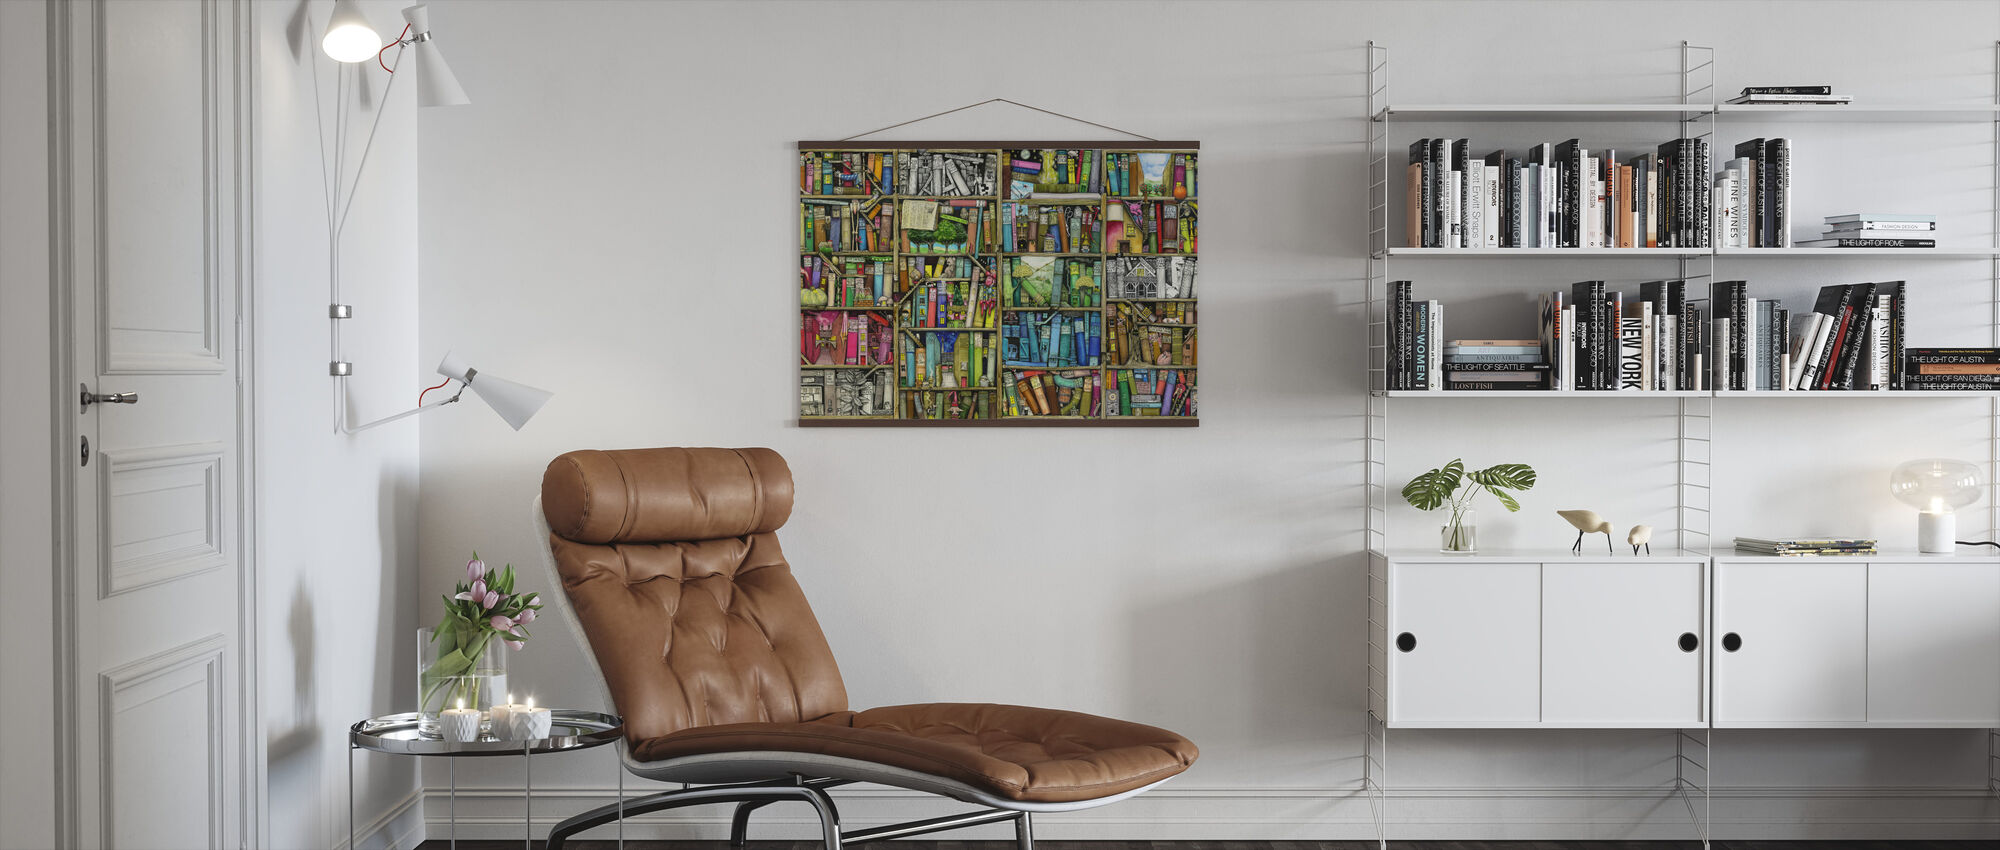 Fantasy Bookshelf - Poster - Living Room